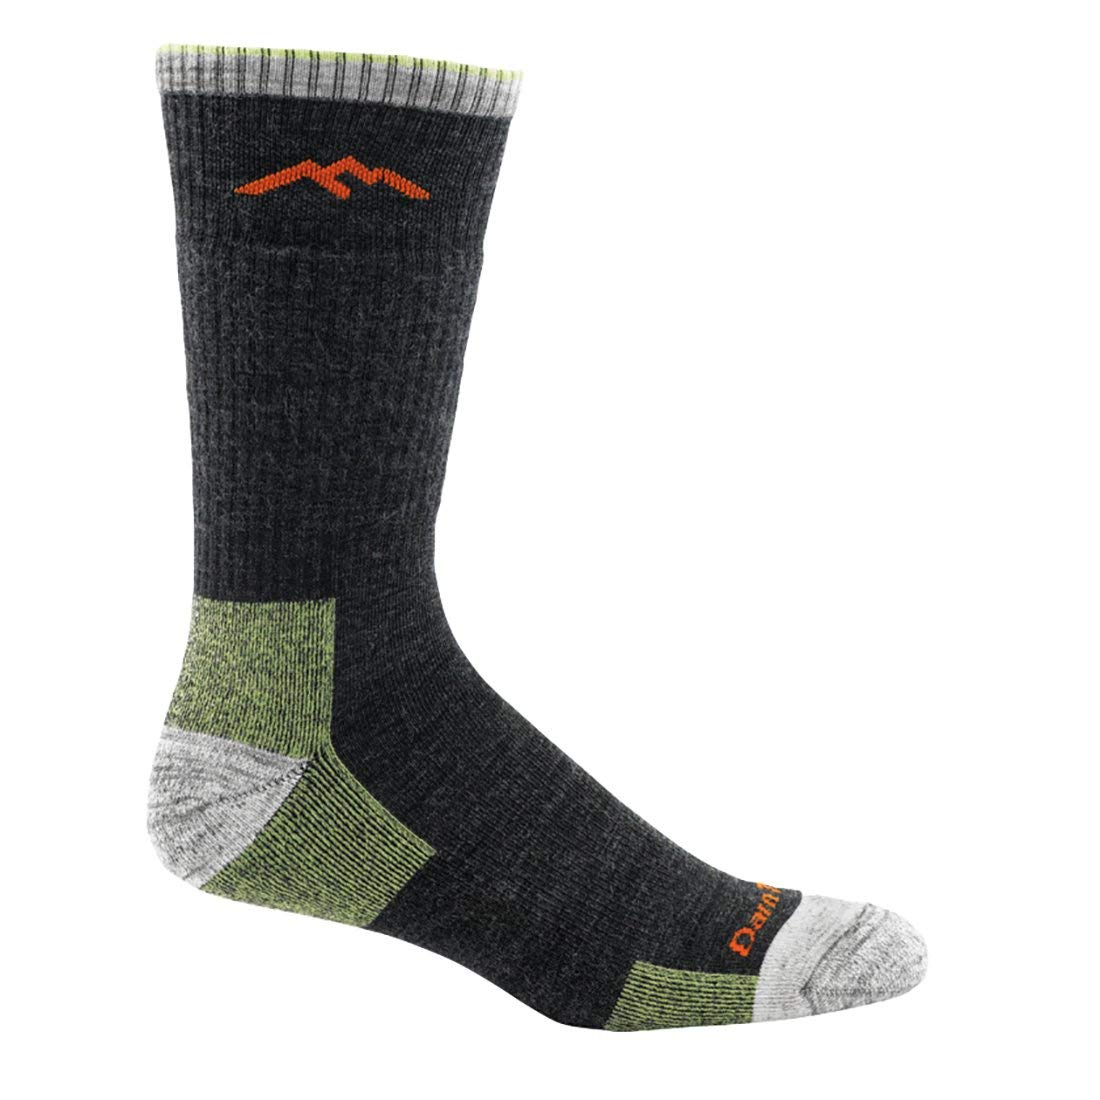 Darn Tough Merino Wool Boot Socks Cushion - Men's Lime Medium by Darn Tough